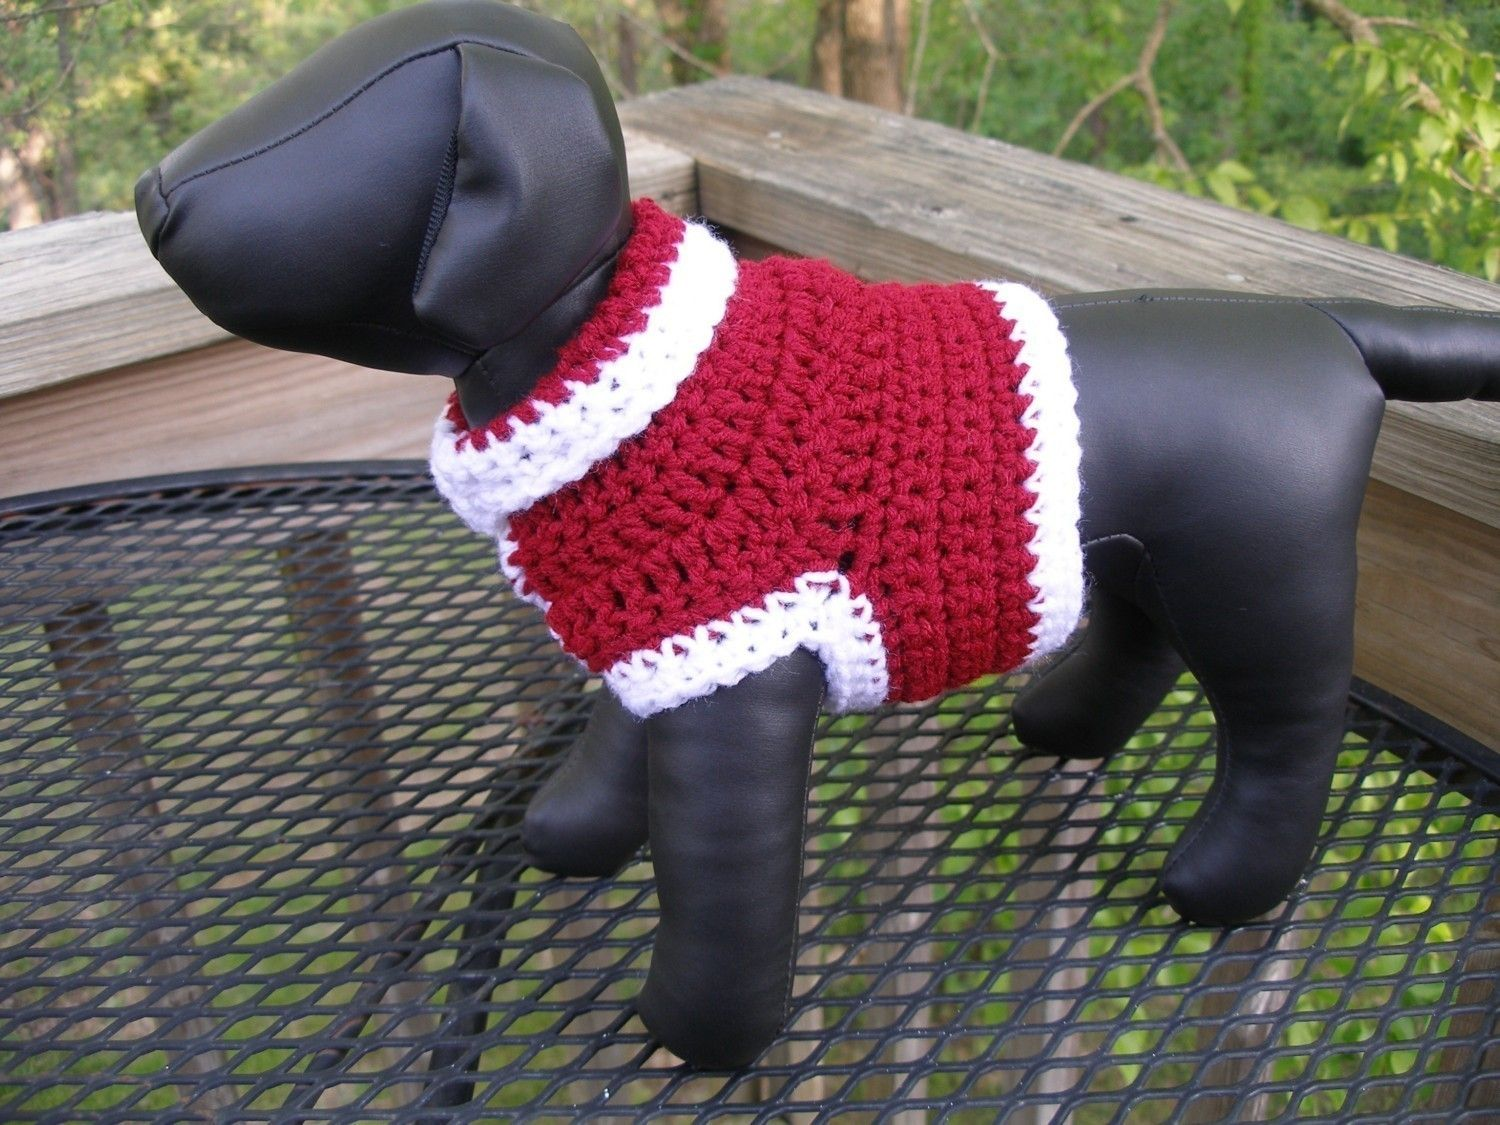 Free crochet pattern basic crochet sweater for chihuahua from free crochet pattern basic crochet sweater for chihuahua from bankloansurffo Gallery